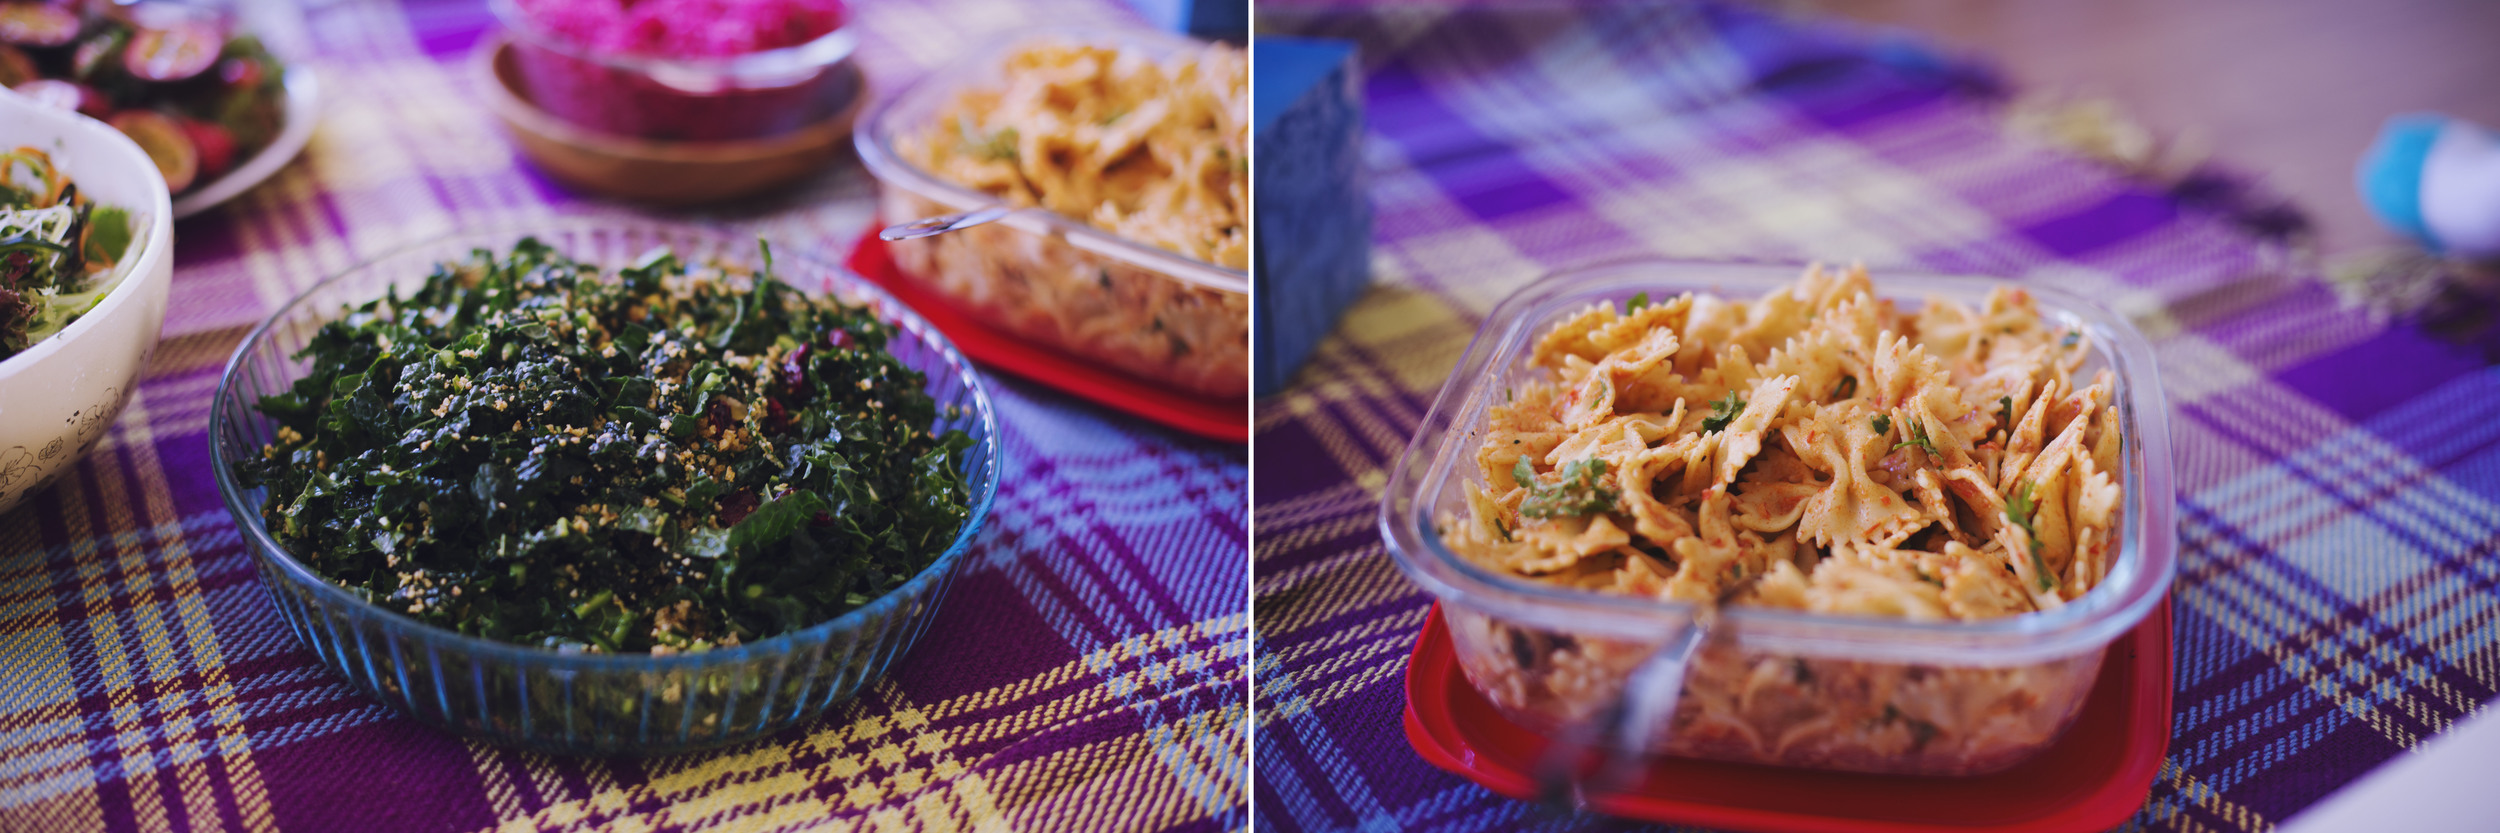 'cheezy' kale salad / roasted capsicum pasta